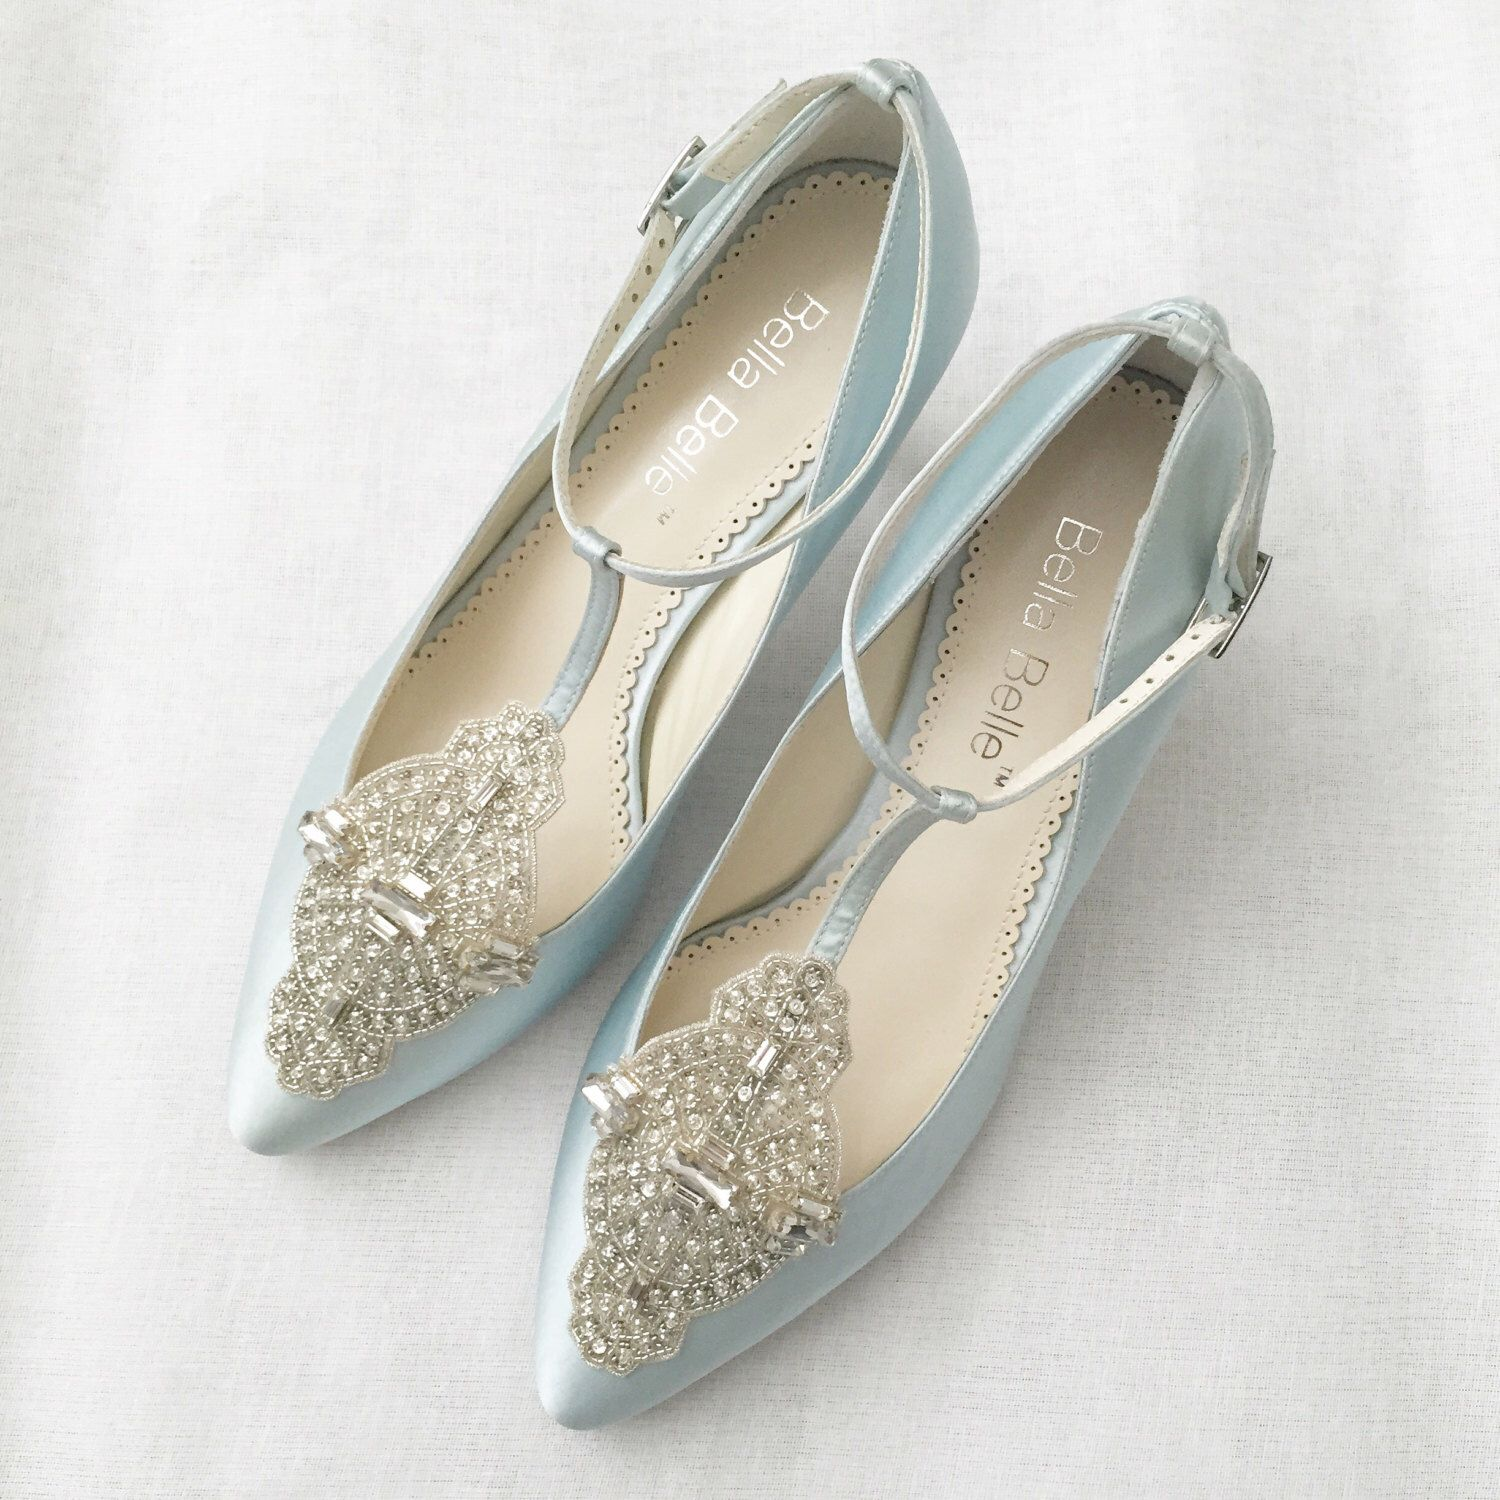 7b40e6255fe Art Deco Something Blue Wedding Shoes with Great Gatsby Crystal Applique  T-Strap Kitten Heel